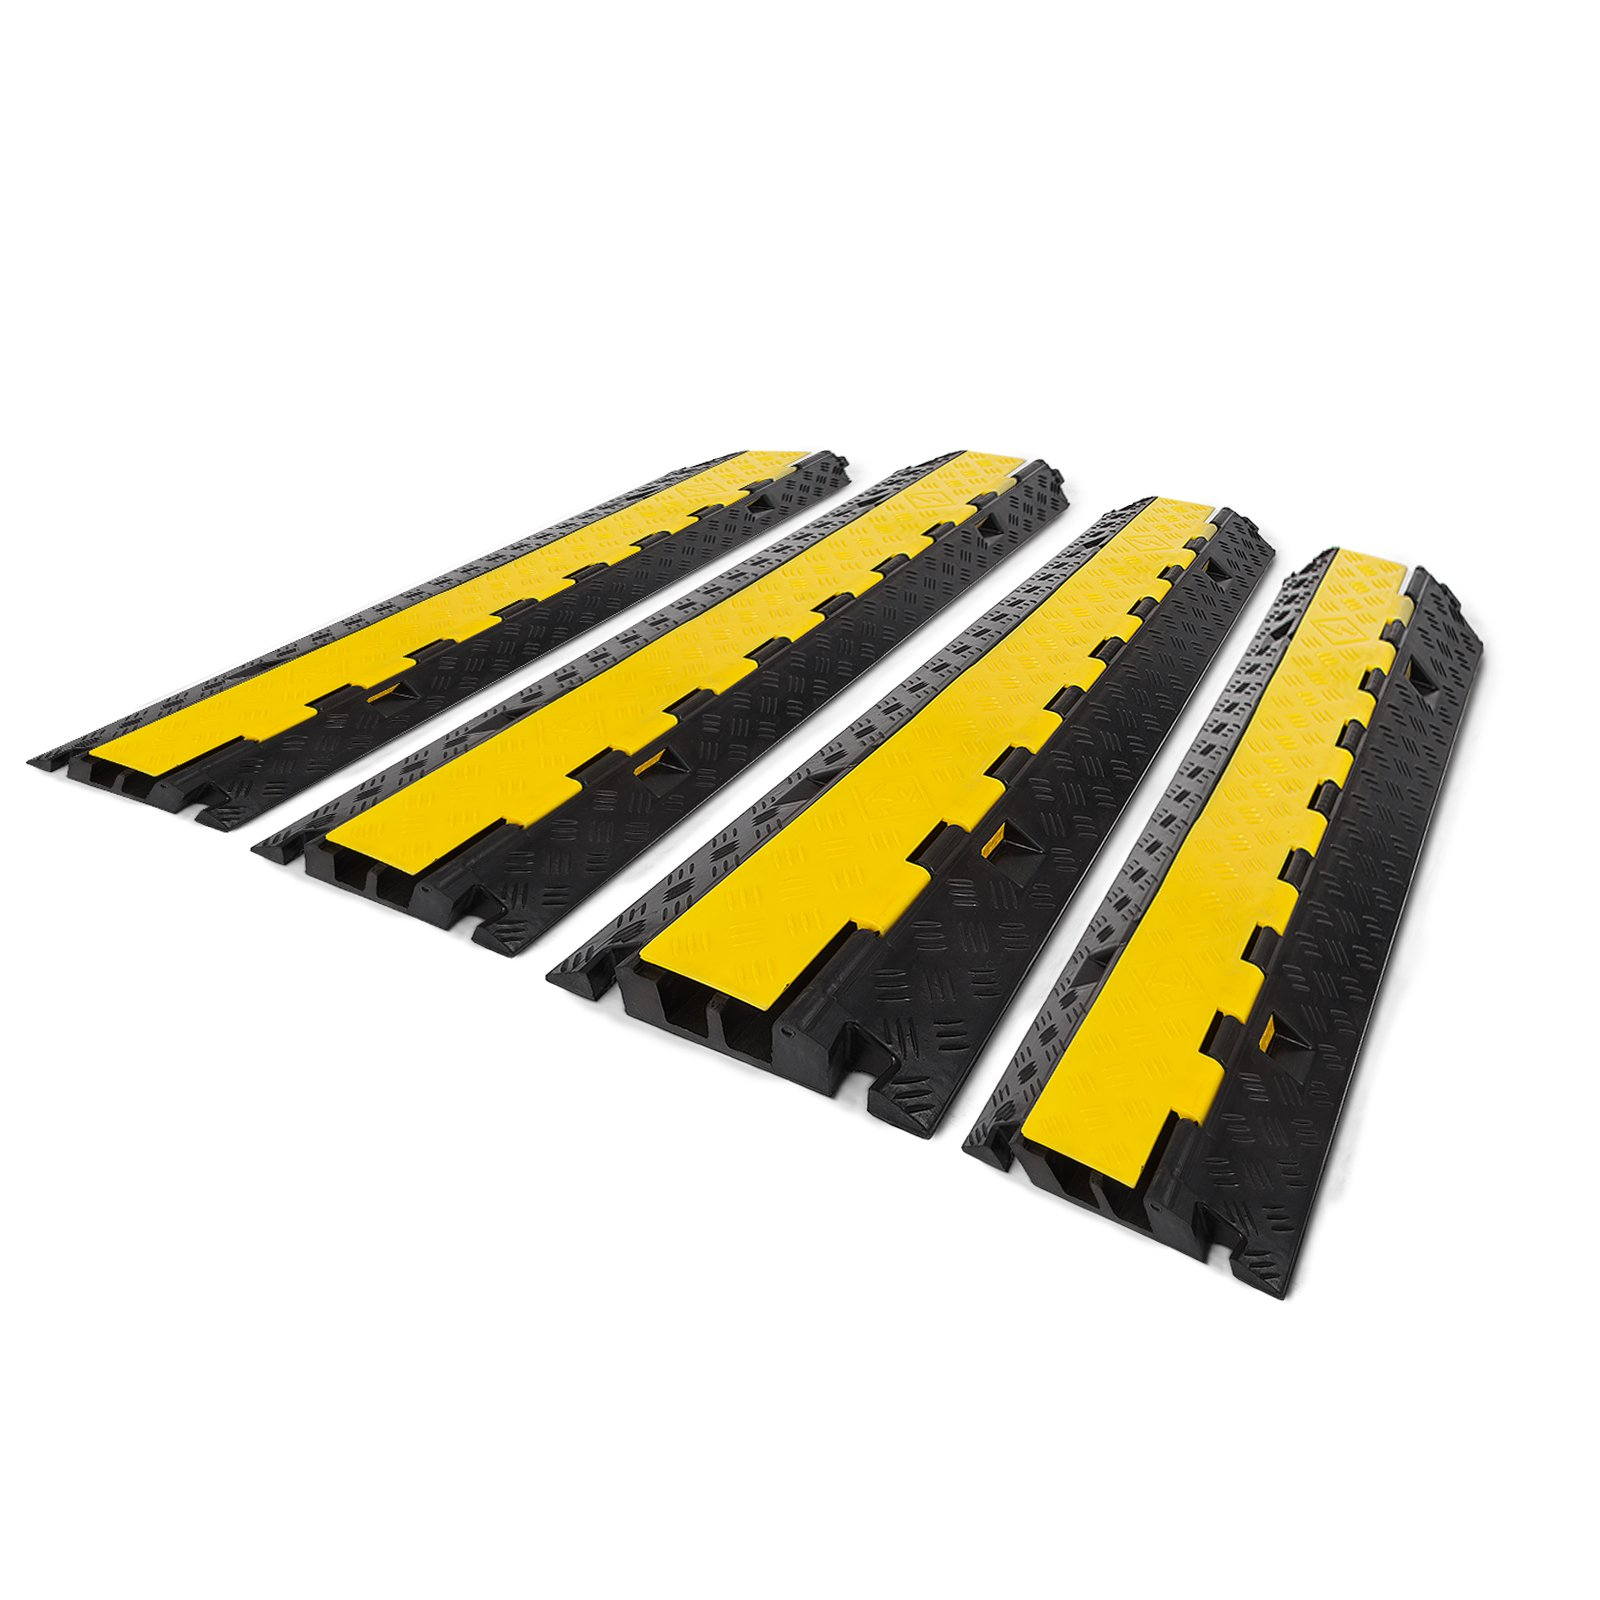 Happybuy 4 Pack Rubber Cable Protector Ramp 2 Channel Heavy Duty 66,000LB Load Capacity Cable Wire Cord Cover Ramp Speed Bump Driveway Hose Cable Ramp Protective Cover (2-Channel, 4Pack/66000Lbs) by Happybuy (Image #1)